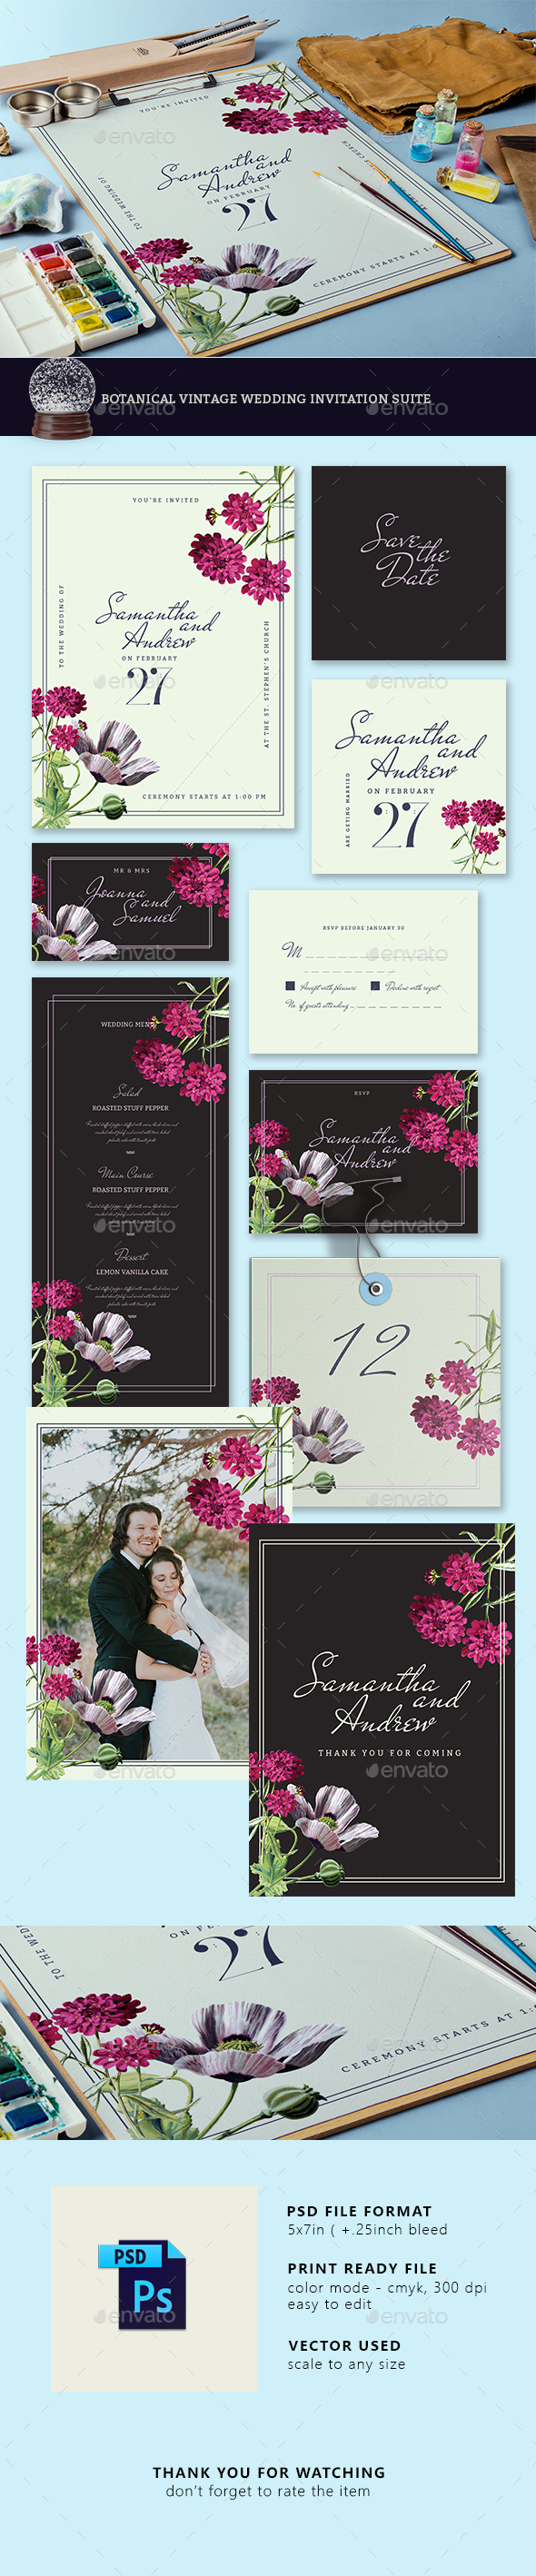 Botanical Vintage Wedding Invitation Suite - Weddings Cards & Invites